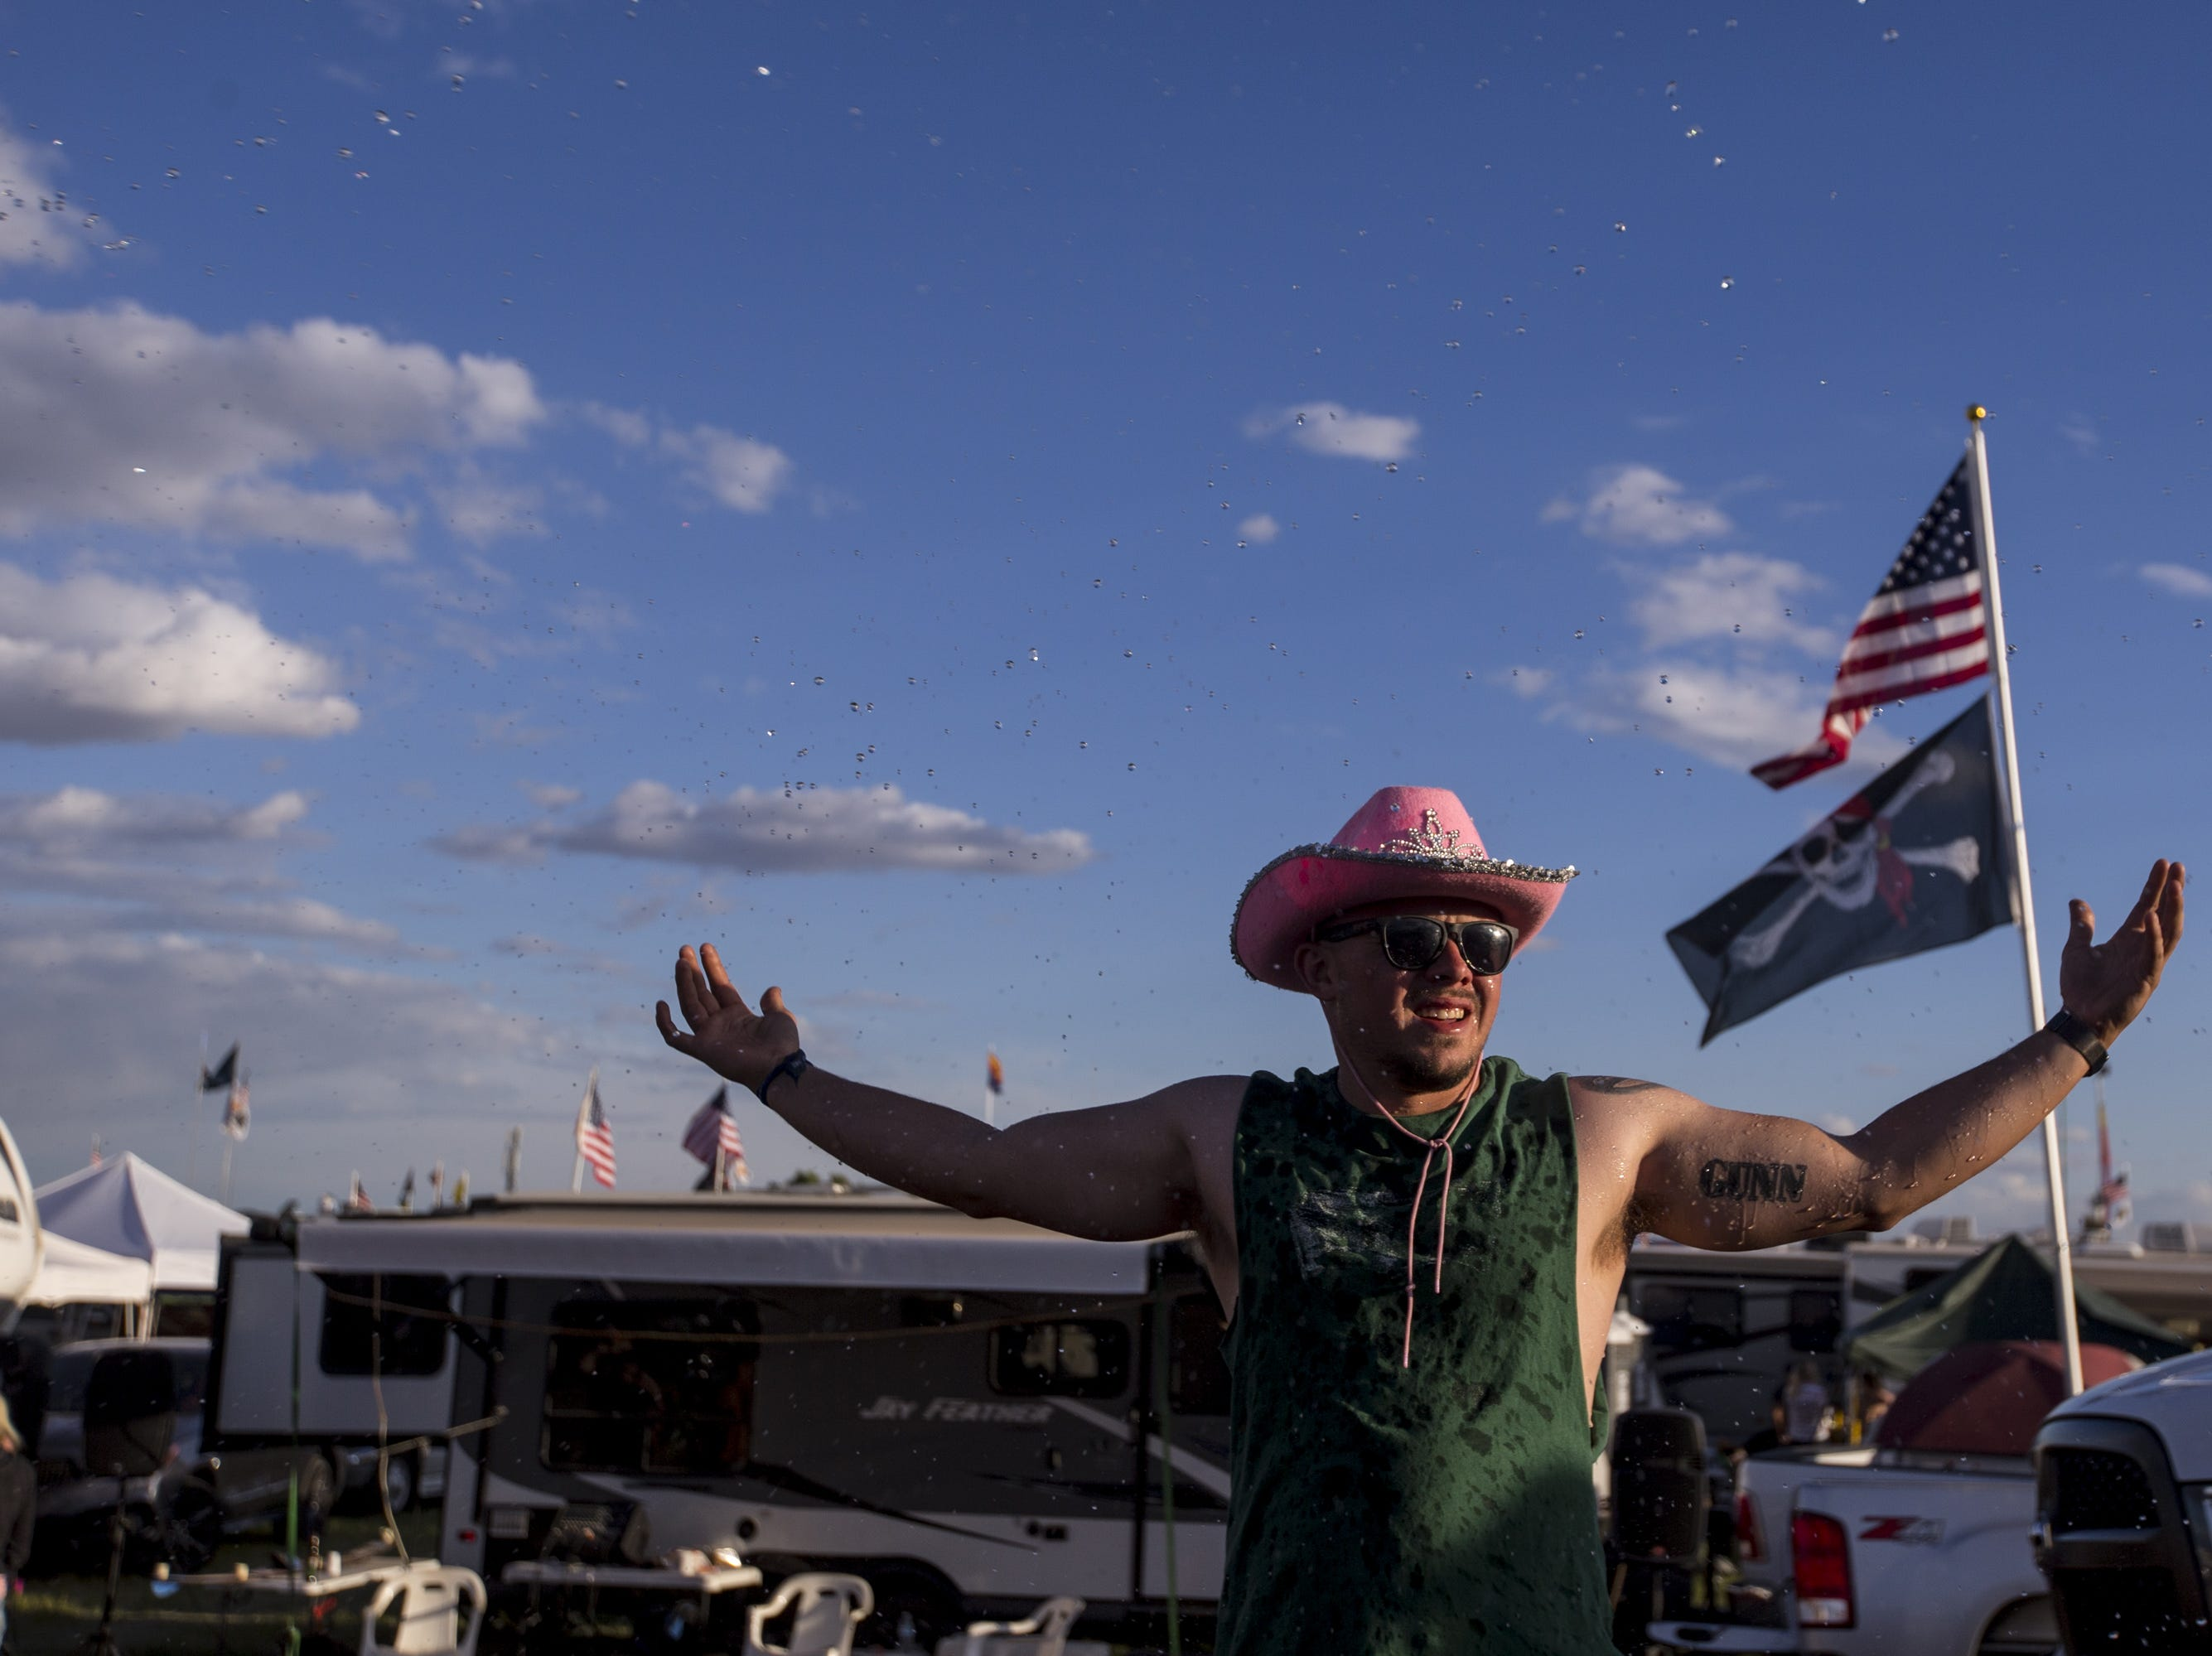 Tanner Novak is sprayed with water at the Crazy Coyote campground on Friday, April 12, 2019, during Day 2 of Country Thunder Arizona in Florence, Ariz.